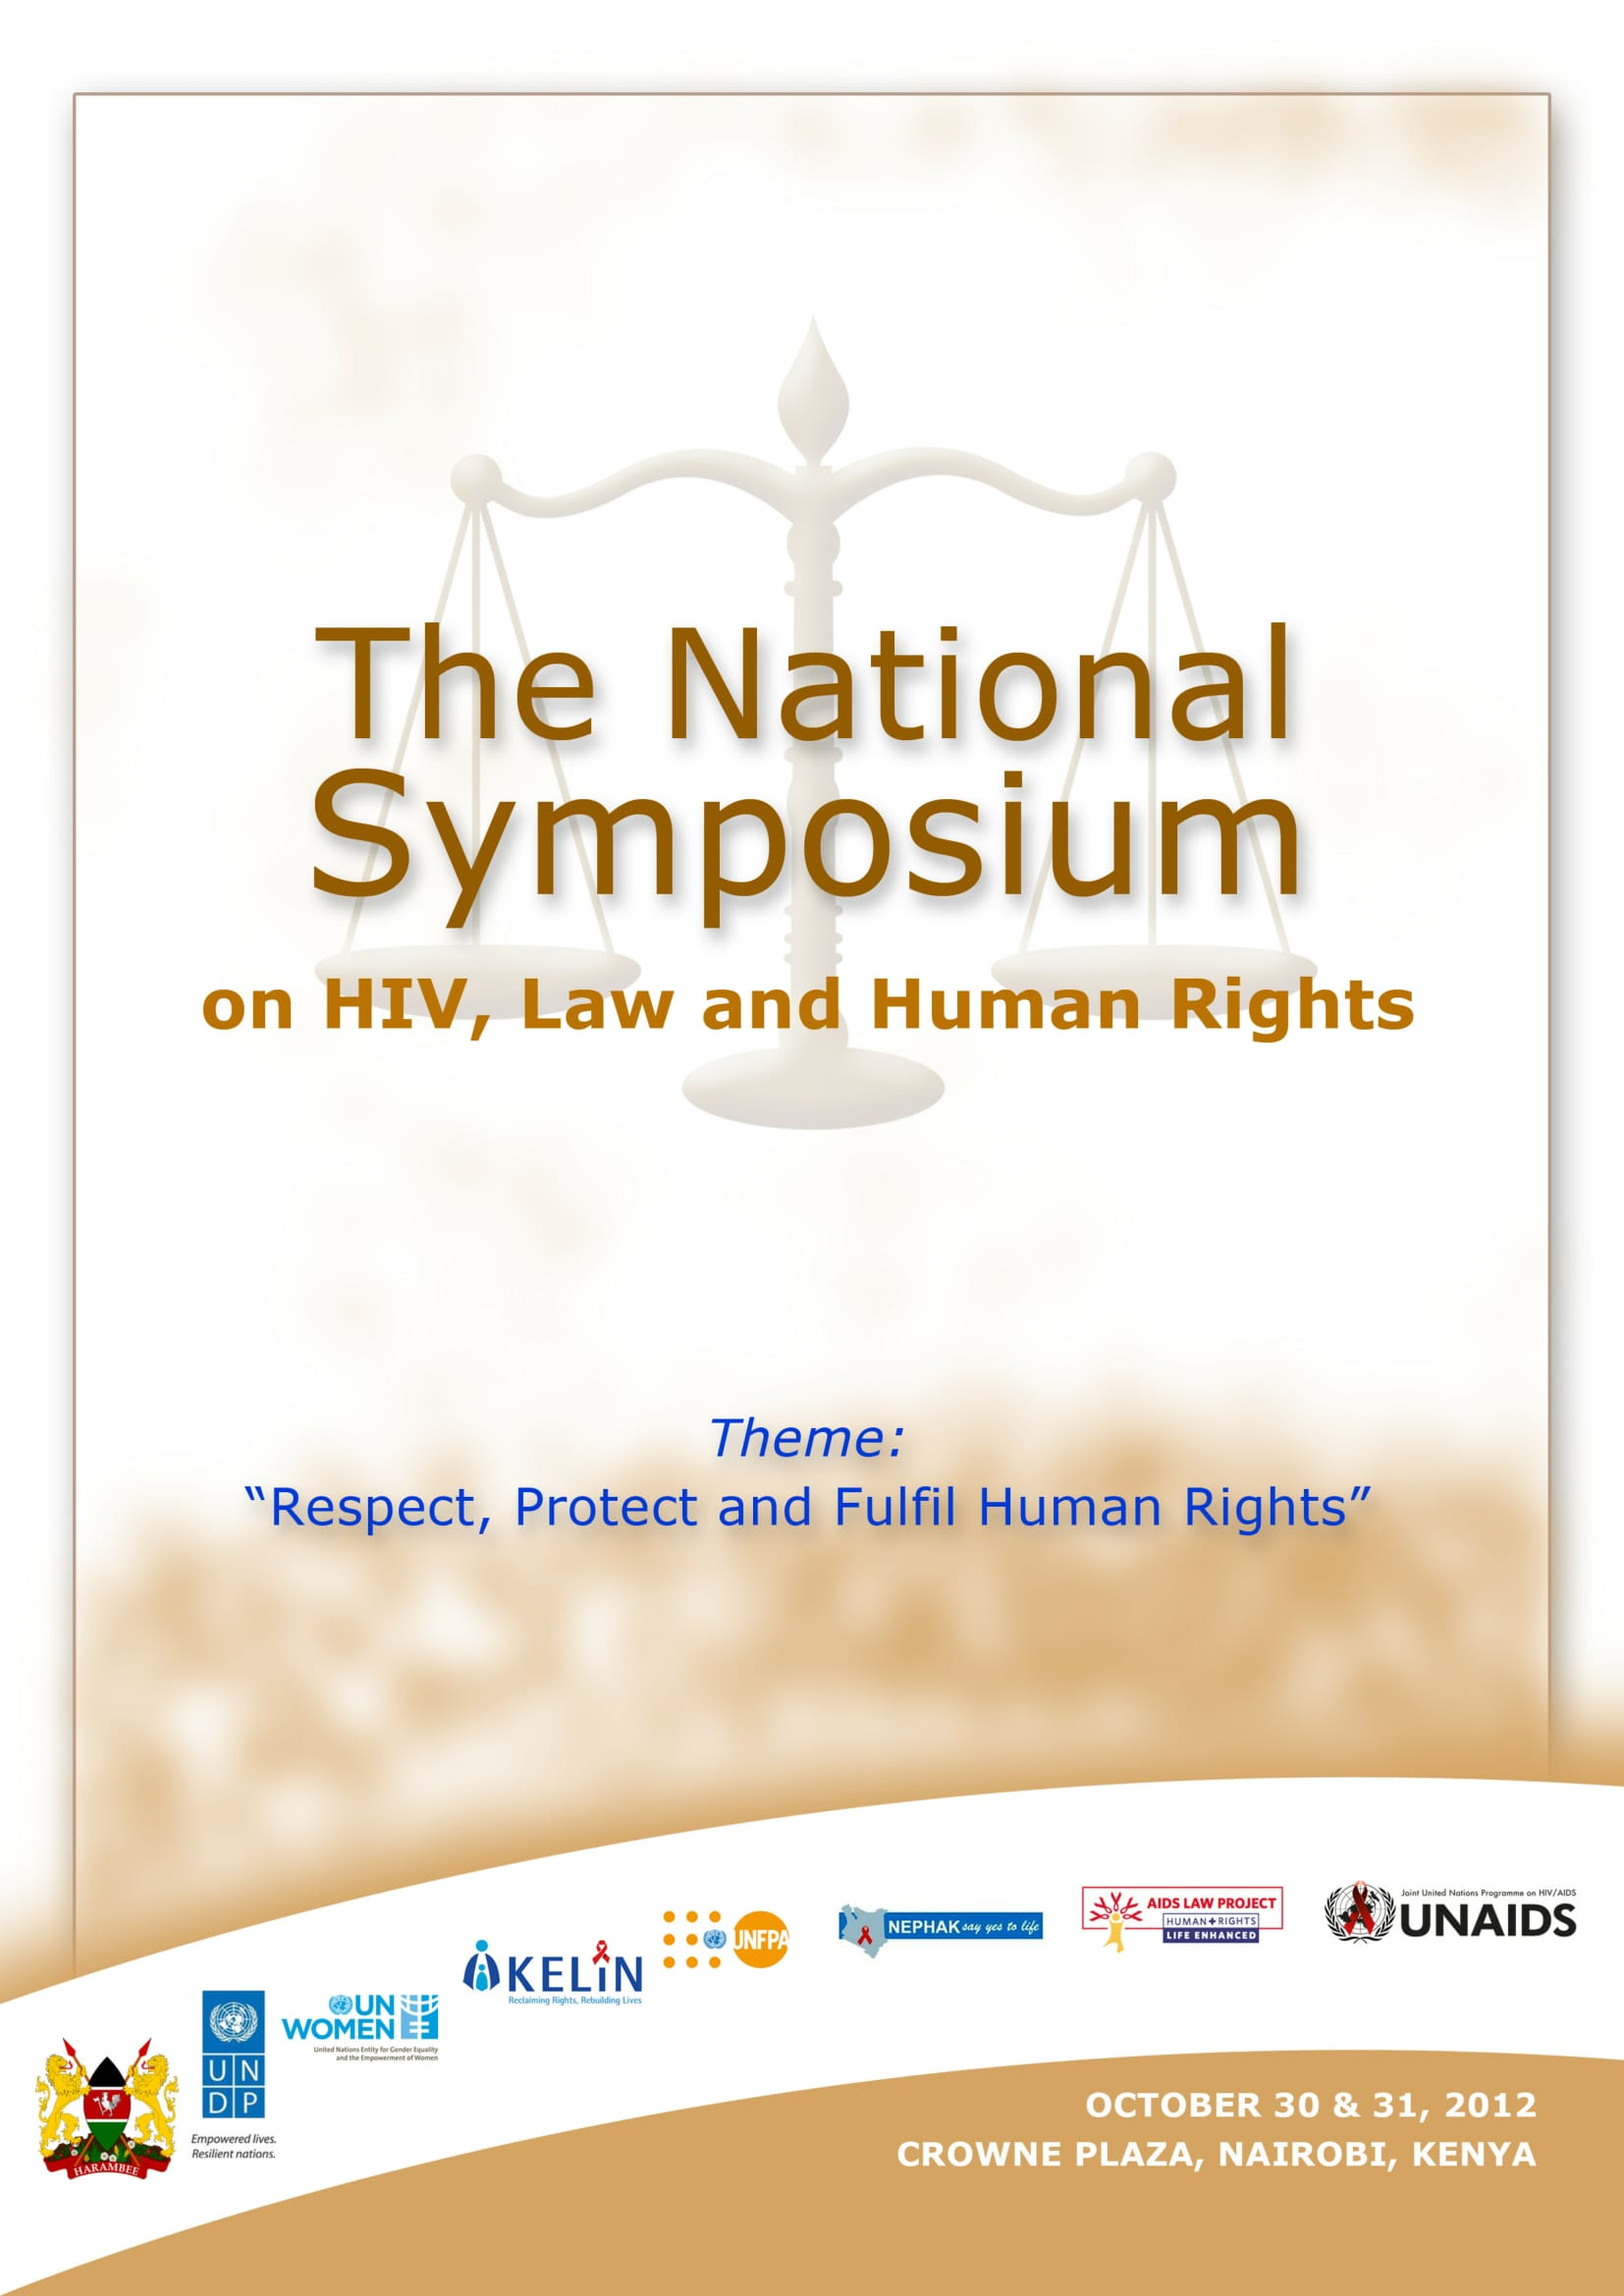 Kenya National Symposium on HIV, Law, and Human Rights: Meeting Report